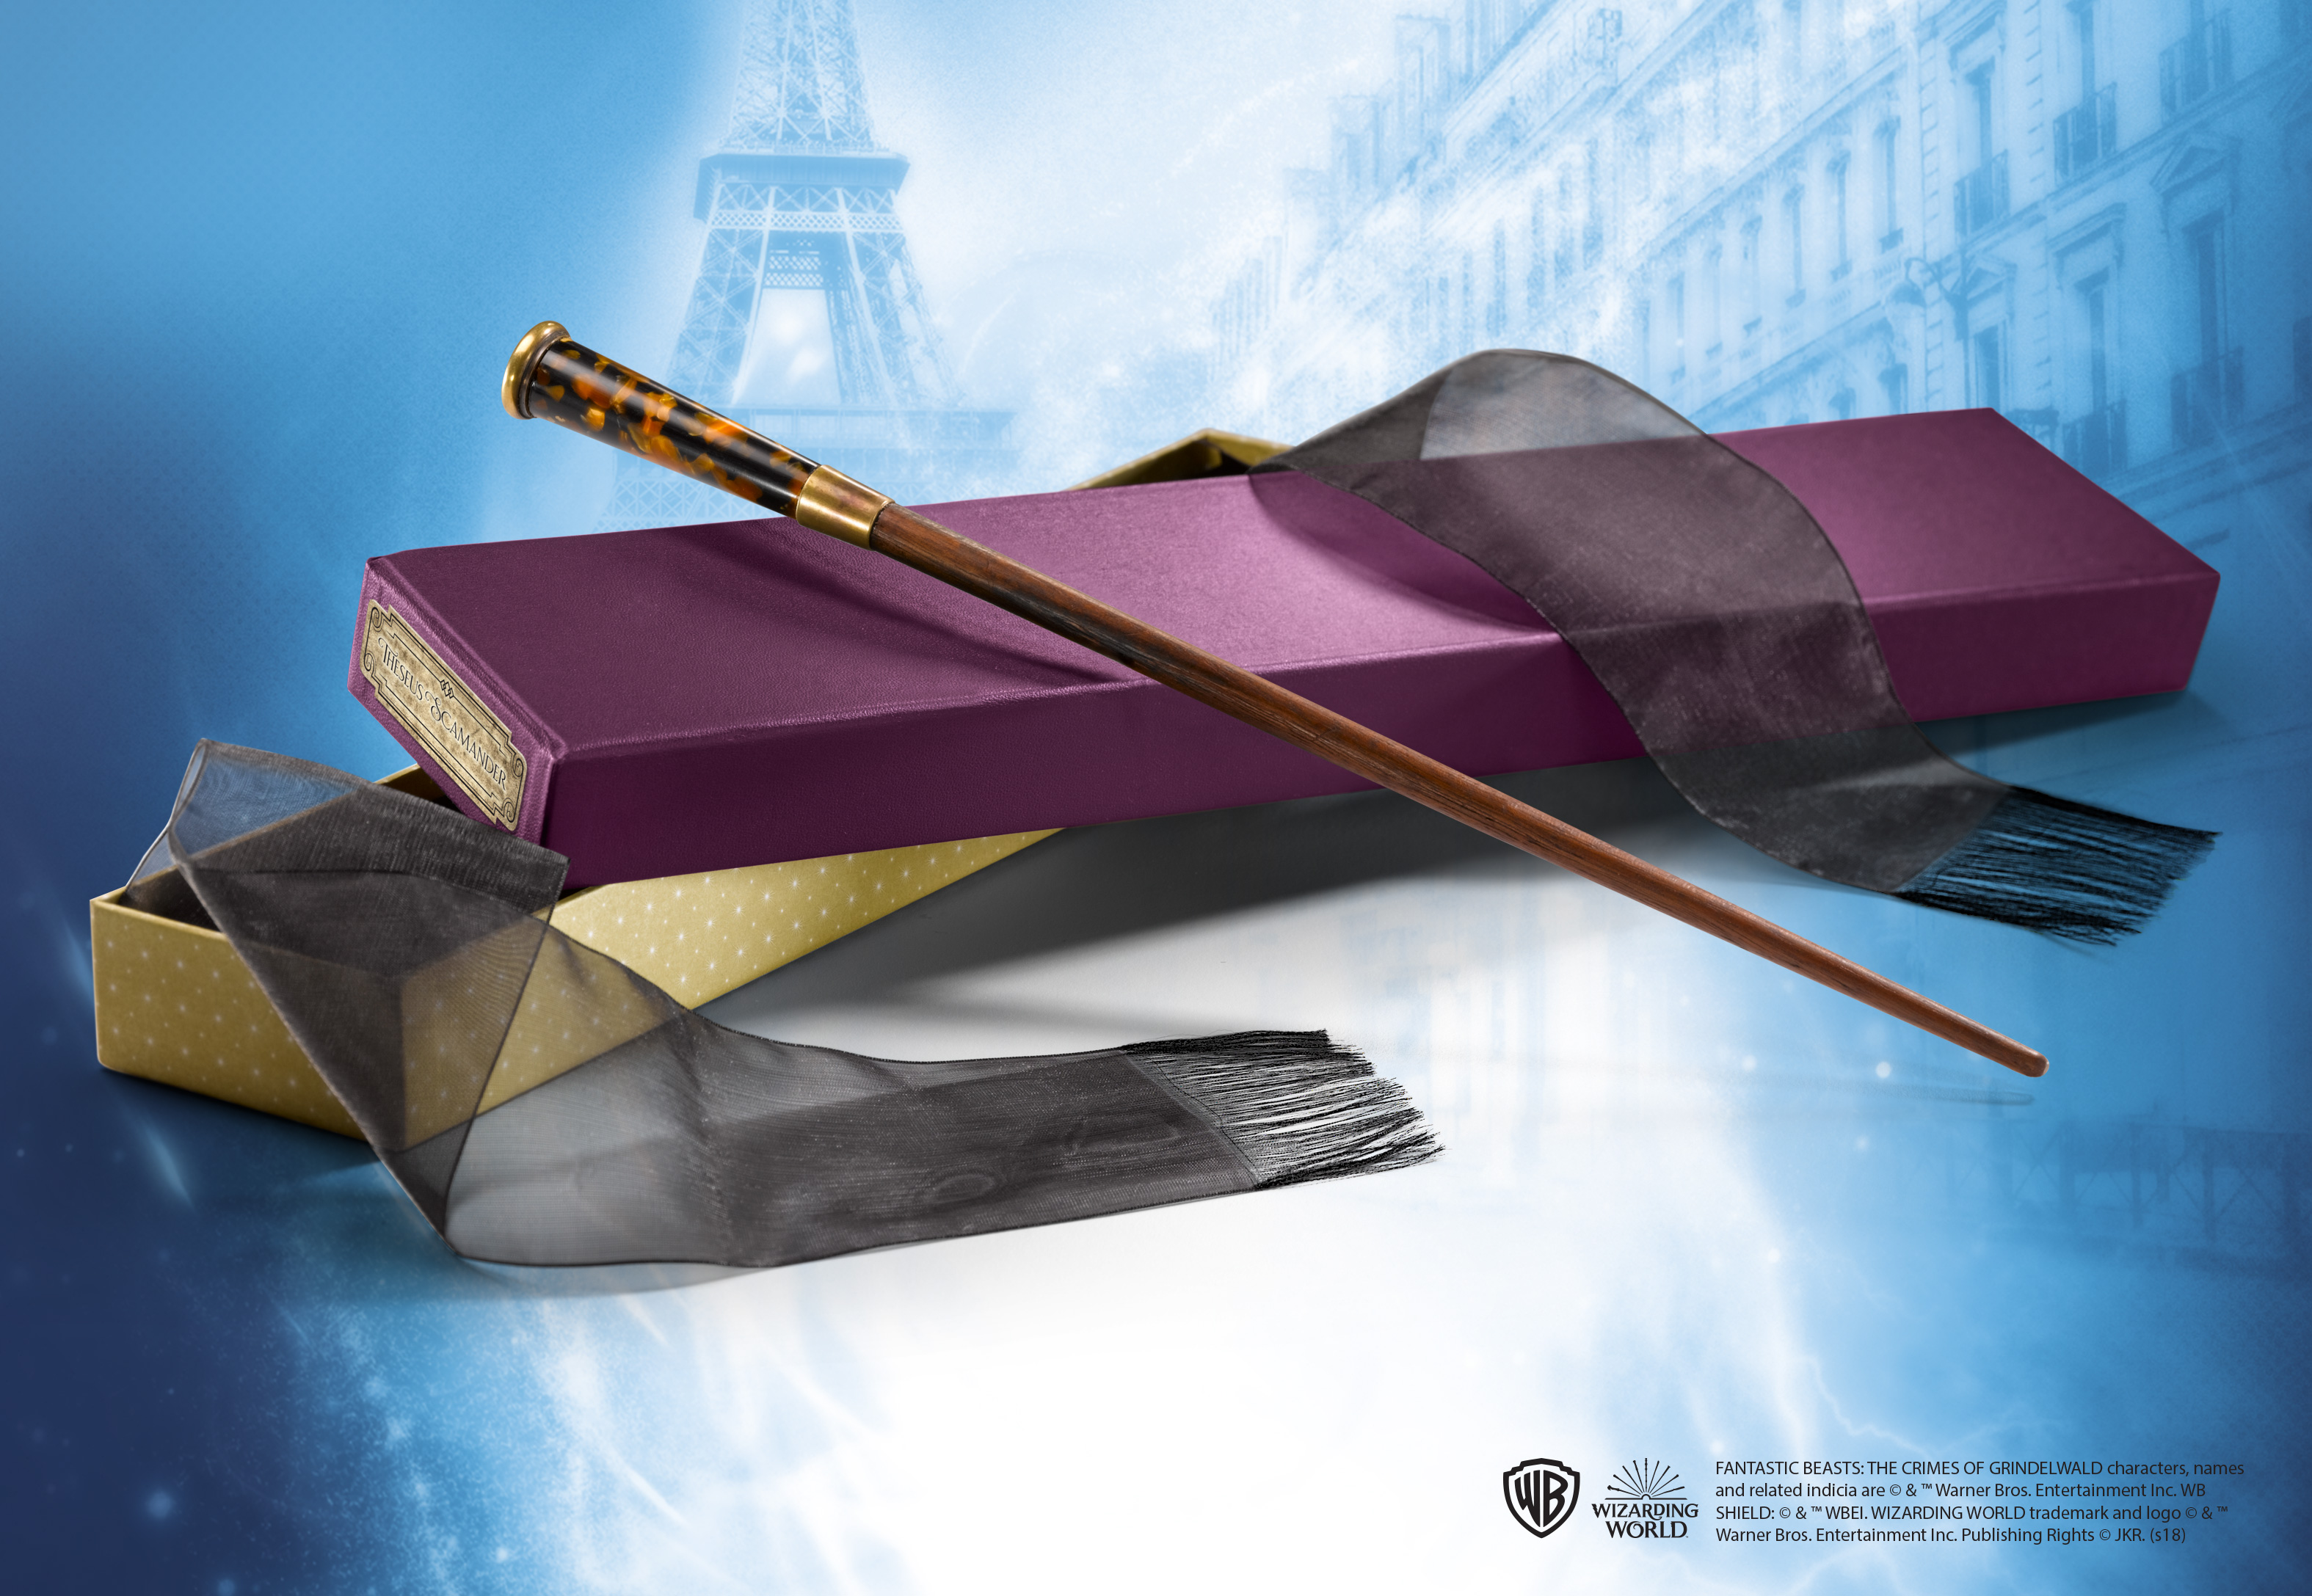 Theseus Scamander's Wand in Collector's Box